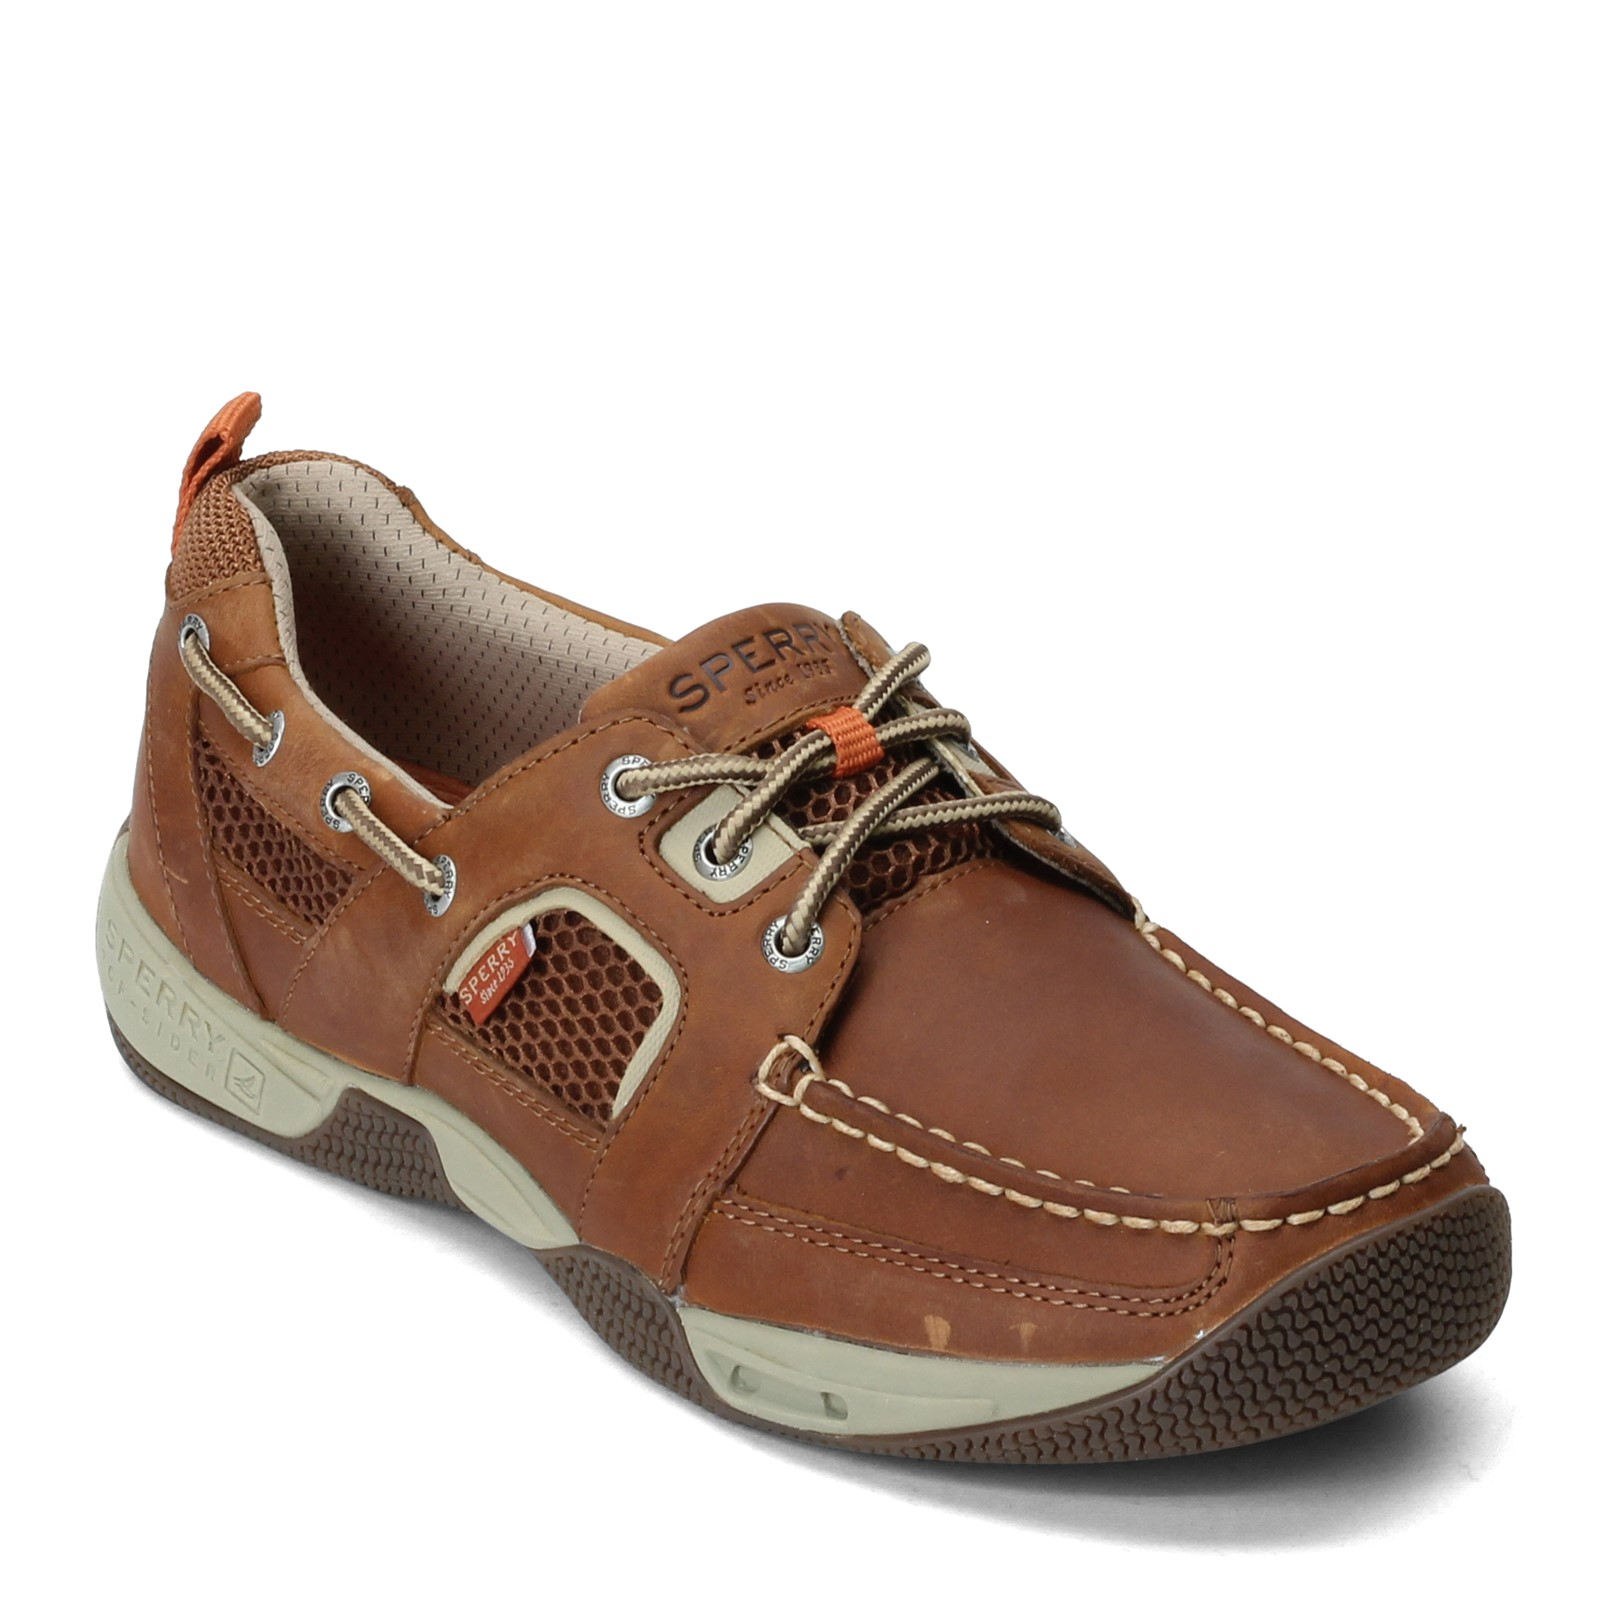 men's Sperry, Sea Kite athletic Boat Shoes